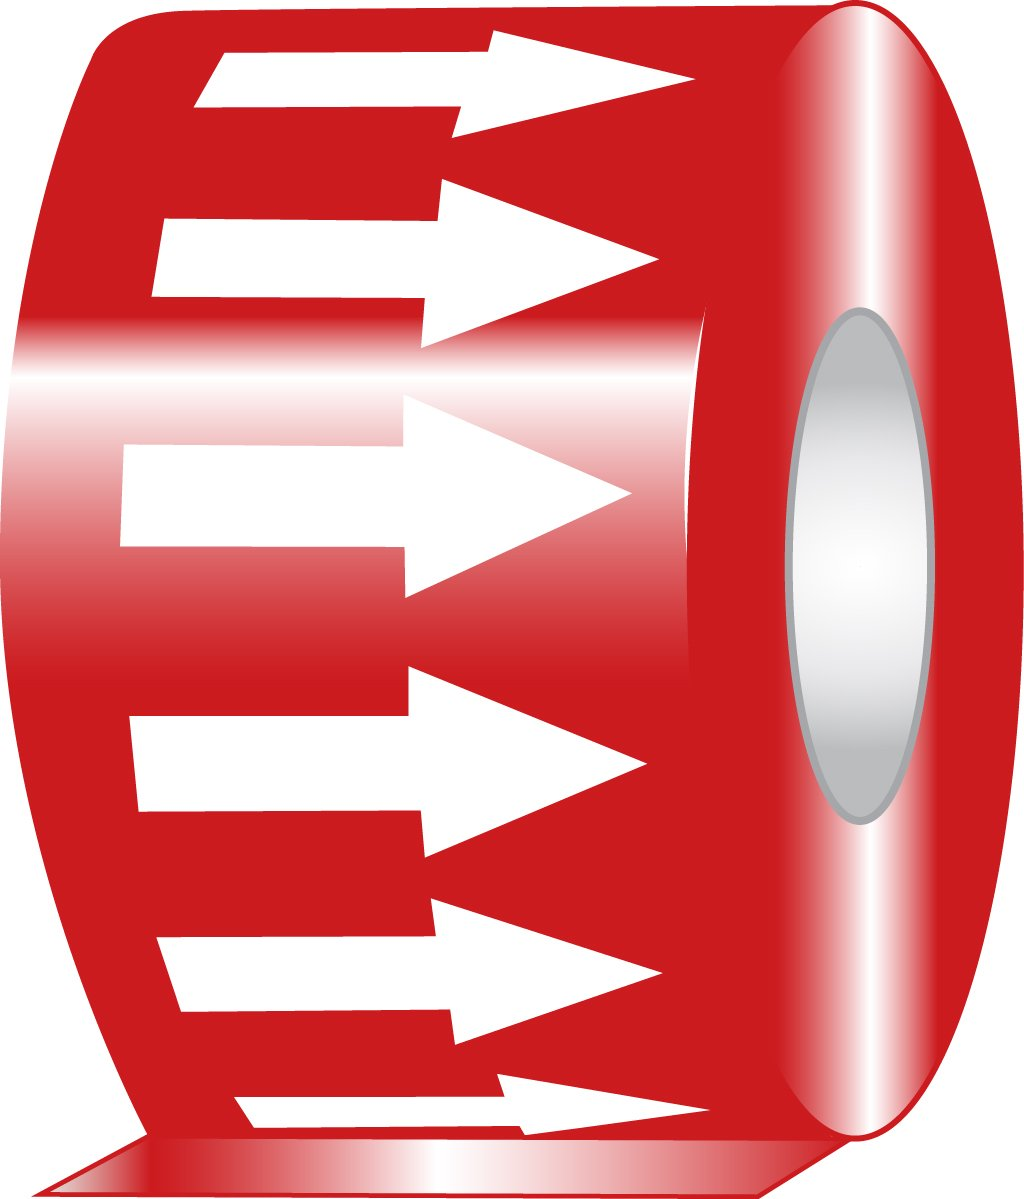 Accuform RAW254RDWT Adhesive Vinyl Directional Flow Arrow Tape, 2'' Width x 54' Length x 0.006'' Thickness, White/Red